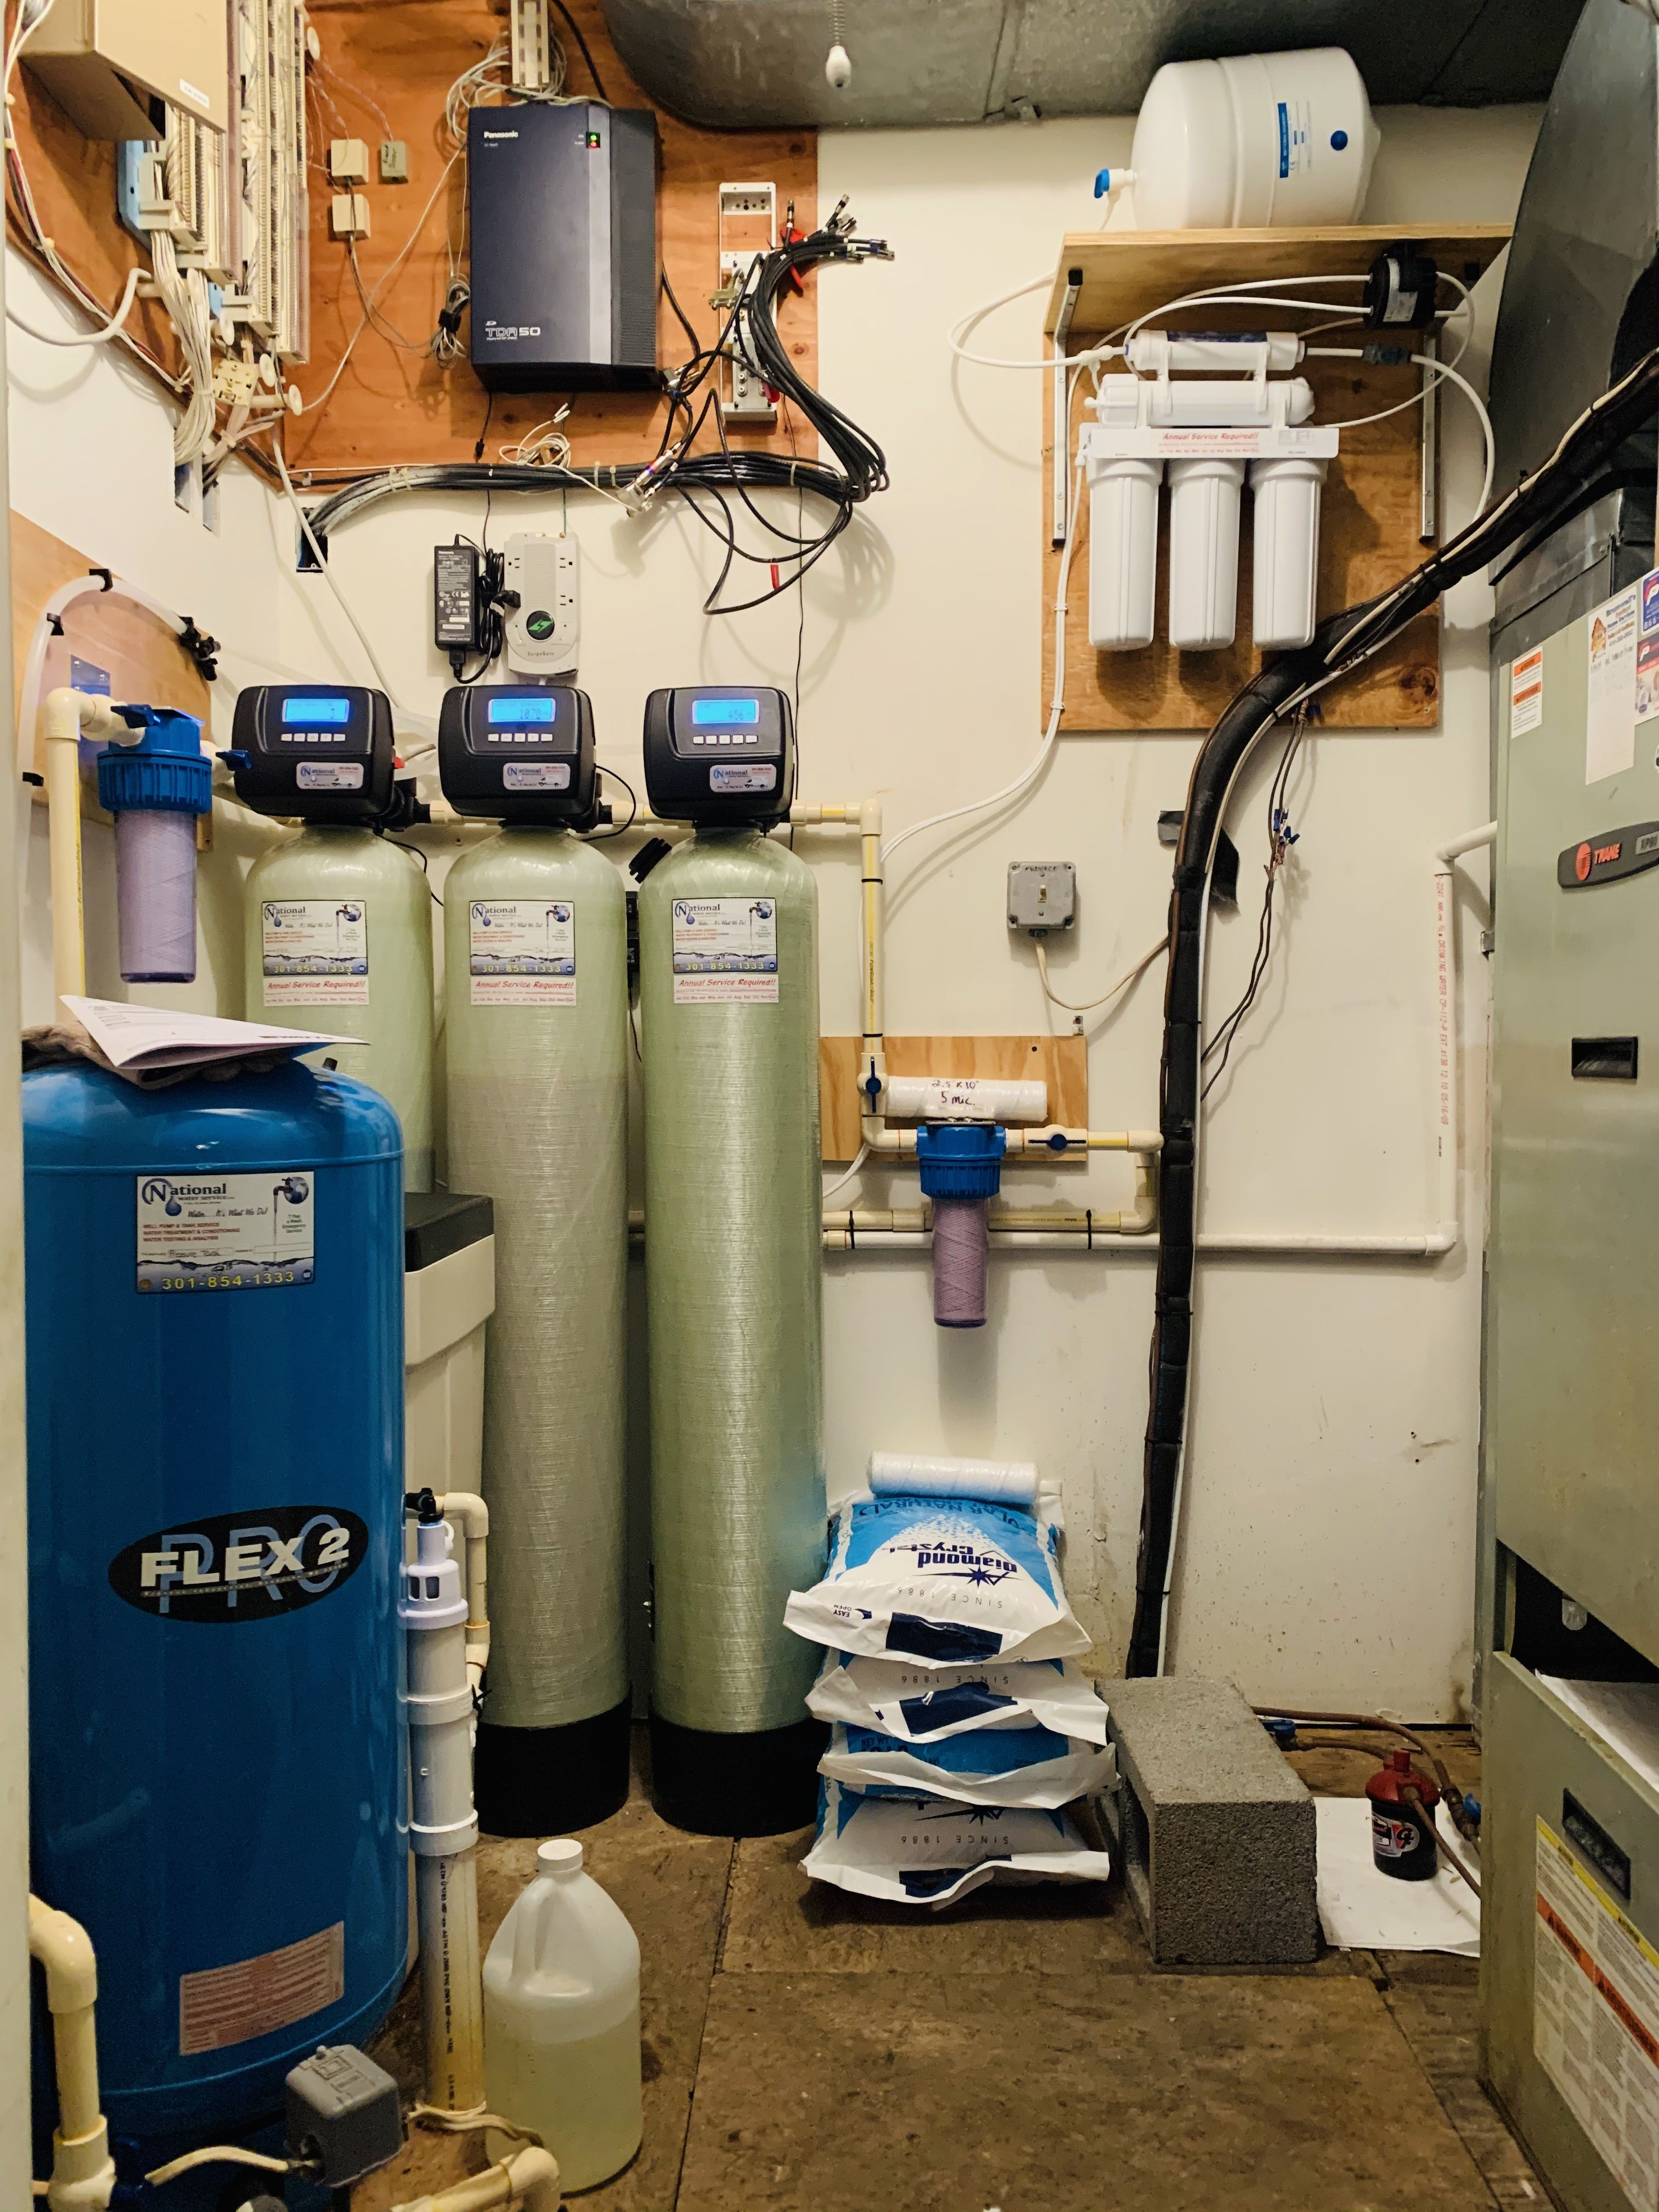 Pin By Moe On Water Treatment System In 2020 Water Treatment System Water Treatment Well Pump